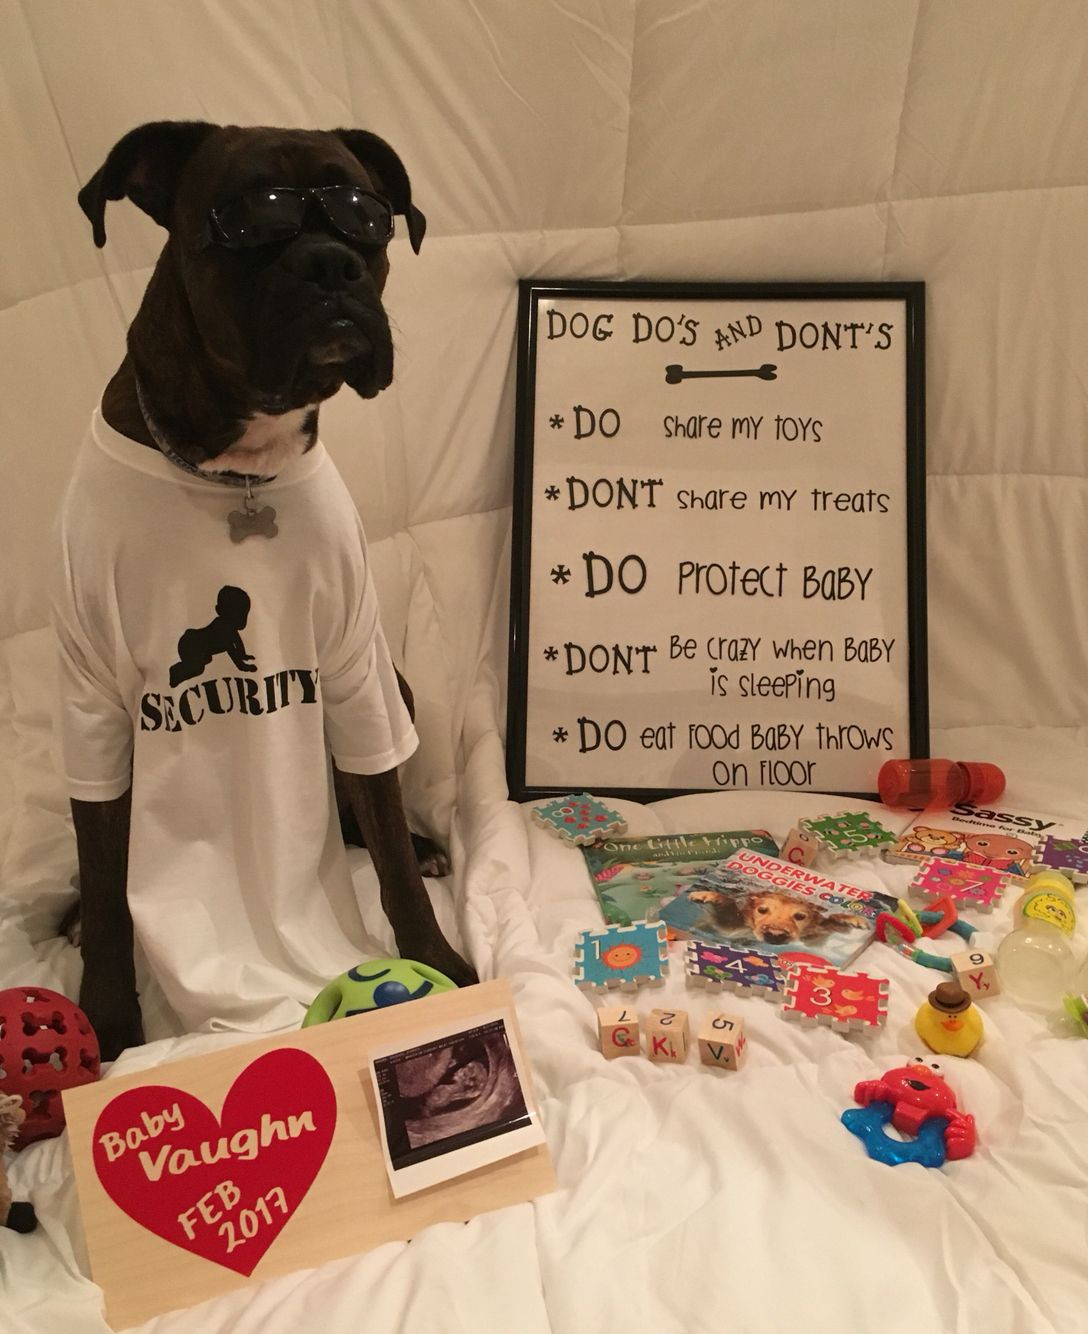 Best ideas about Baby Announcement Gift Ideas . Save or Pin Cute baby announcement idea with dog baby Now.